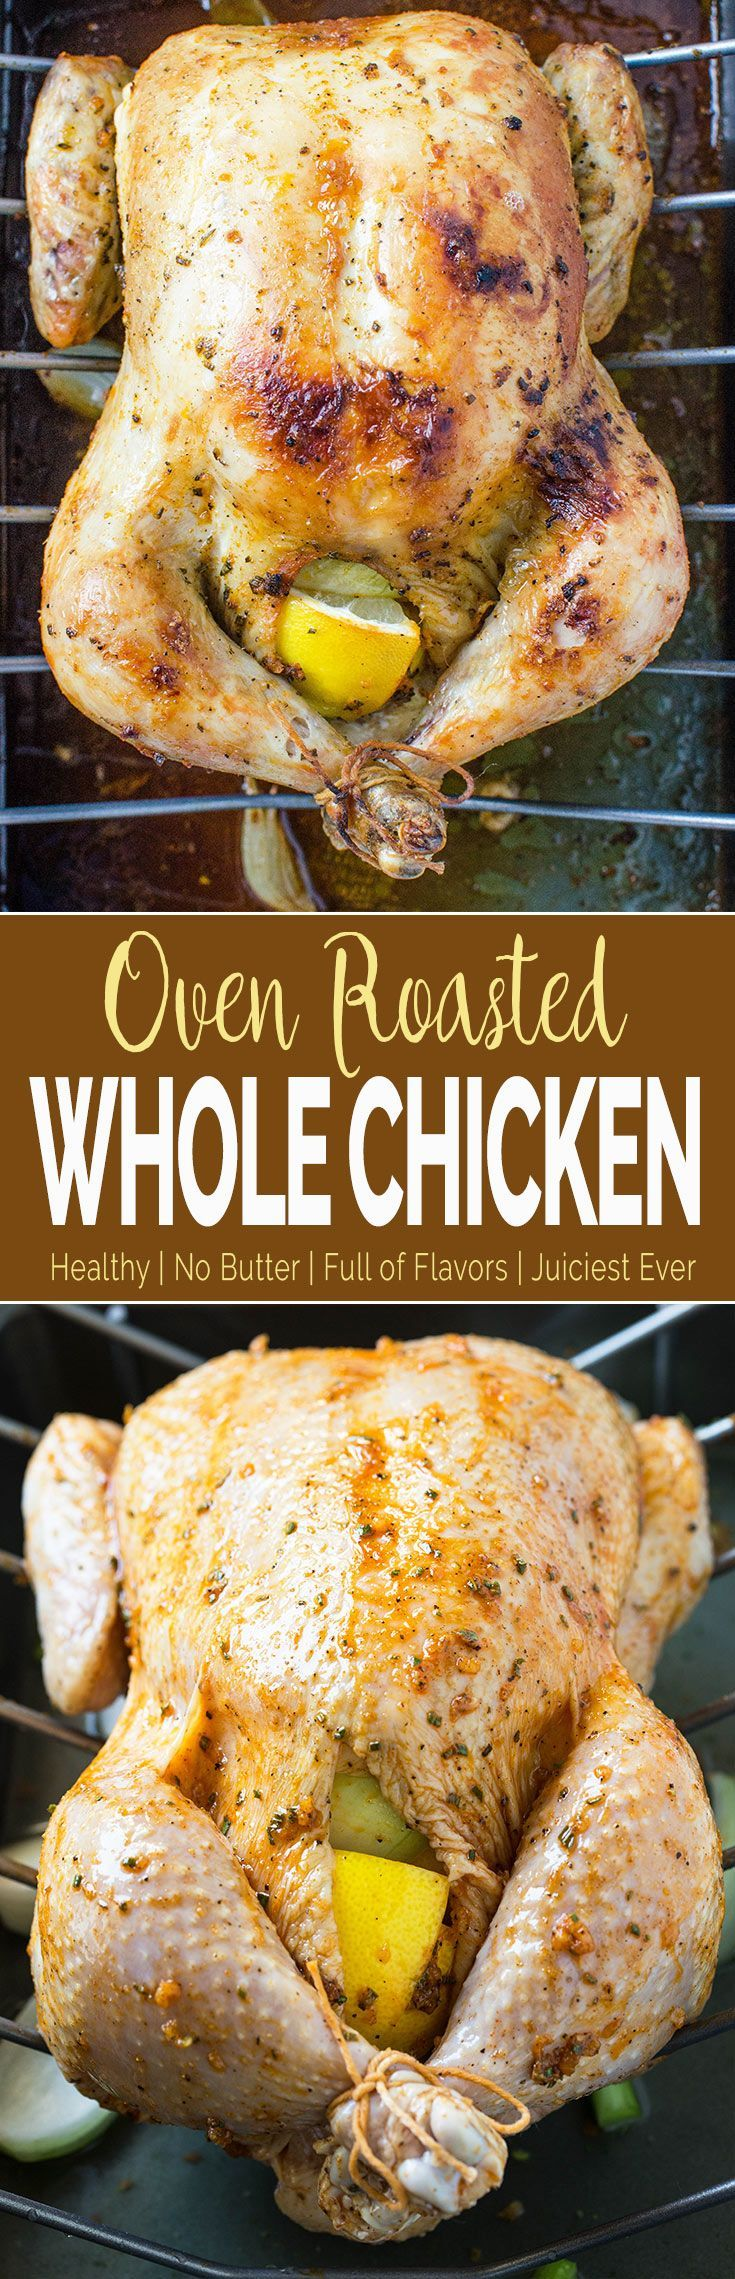 Learn to make perfect super juicy garlic & herb roasted whole chicken in the oven. Quick preparation & tons of flavors with delicious gravy prepared using pandrippings. #chicken #thanksgiving #healthyrecipes  via @watchwhatueat